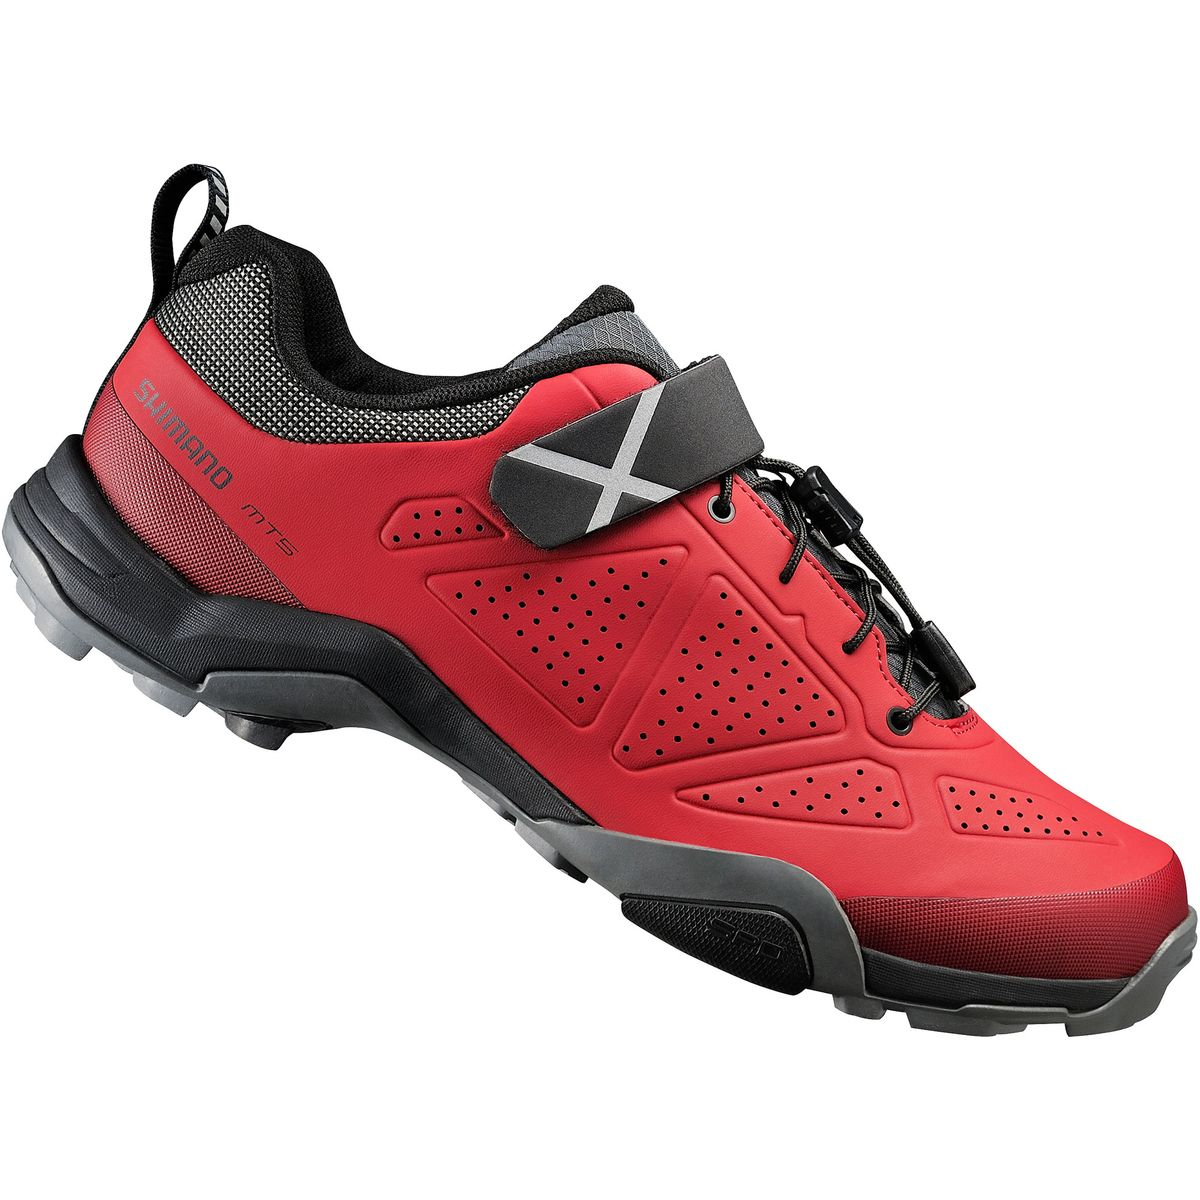 SH-MT5 MTB/trekking shoes